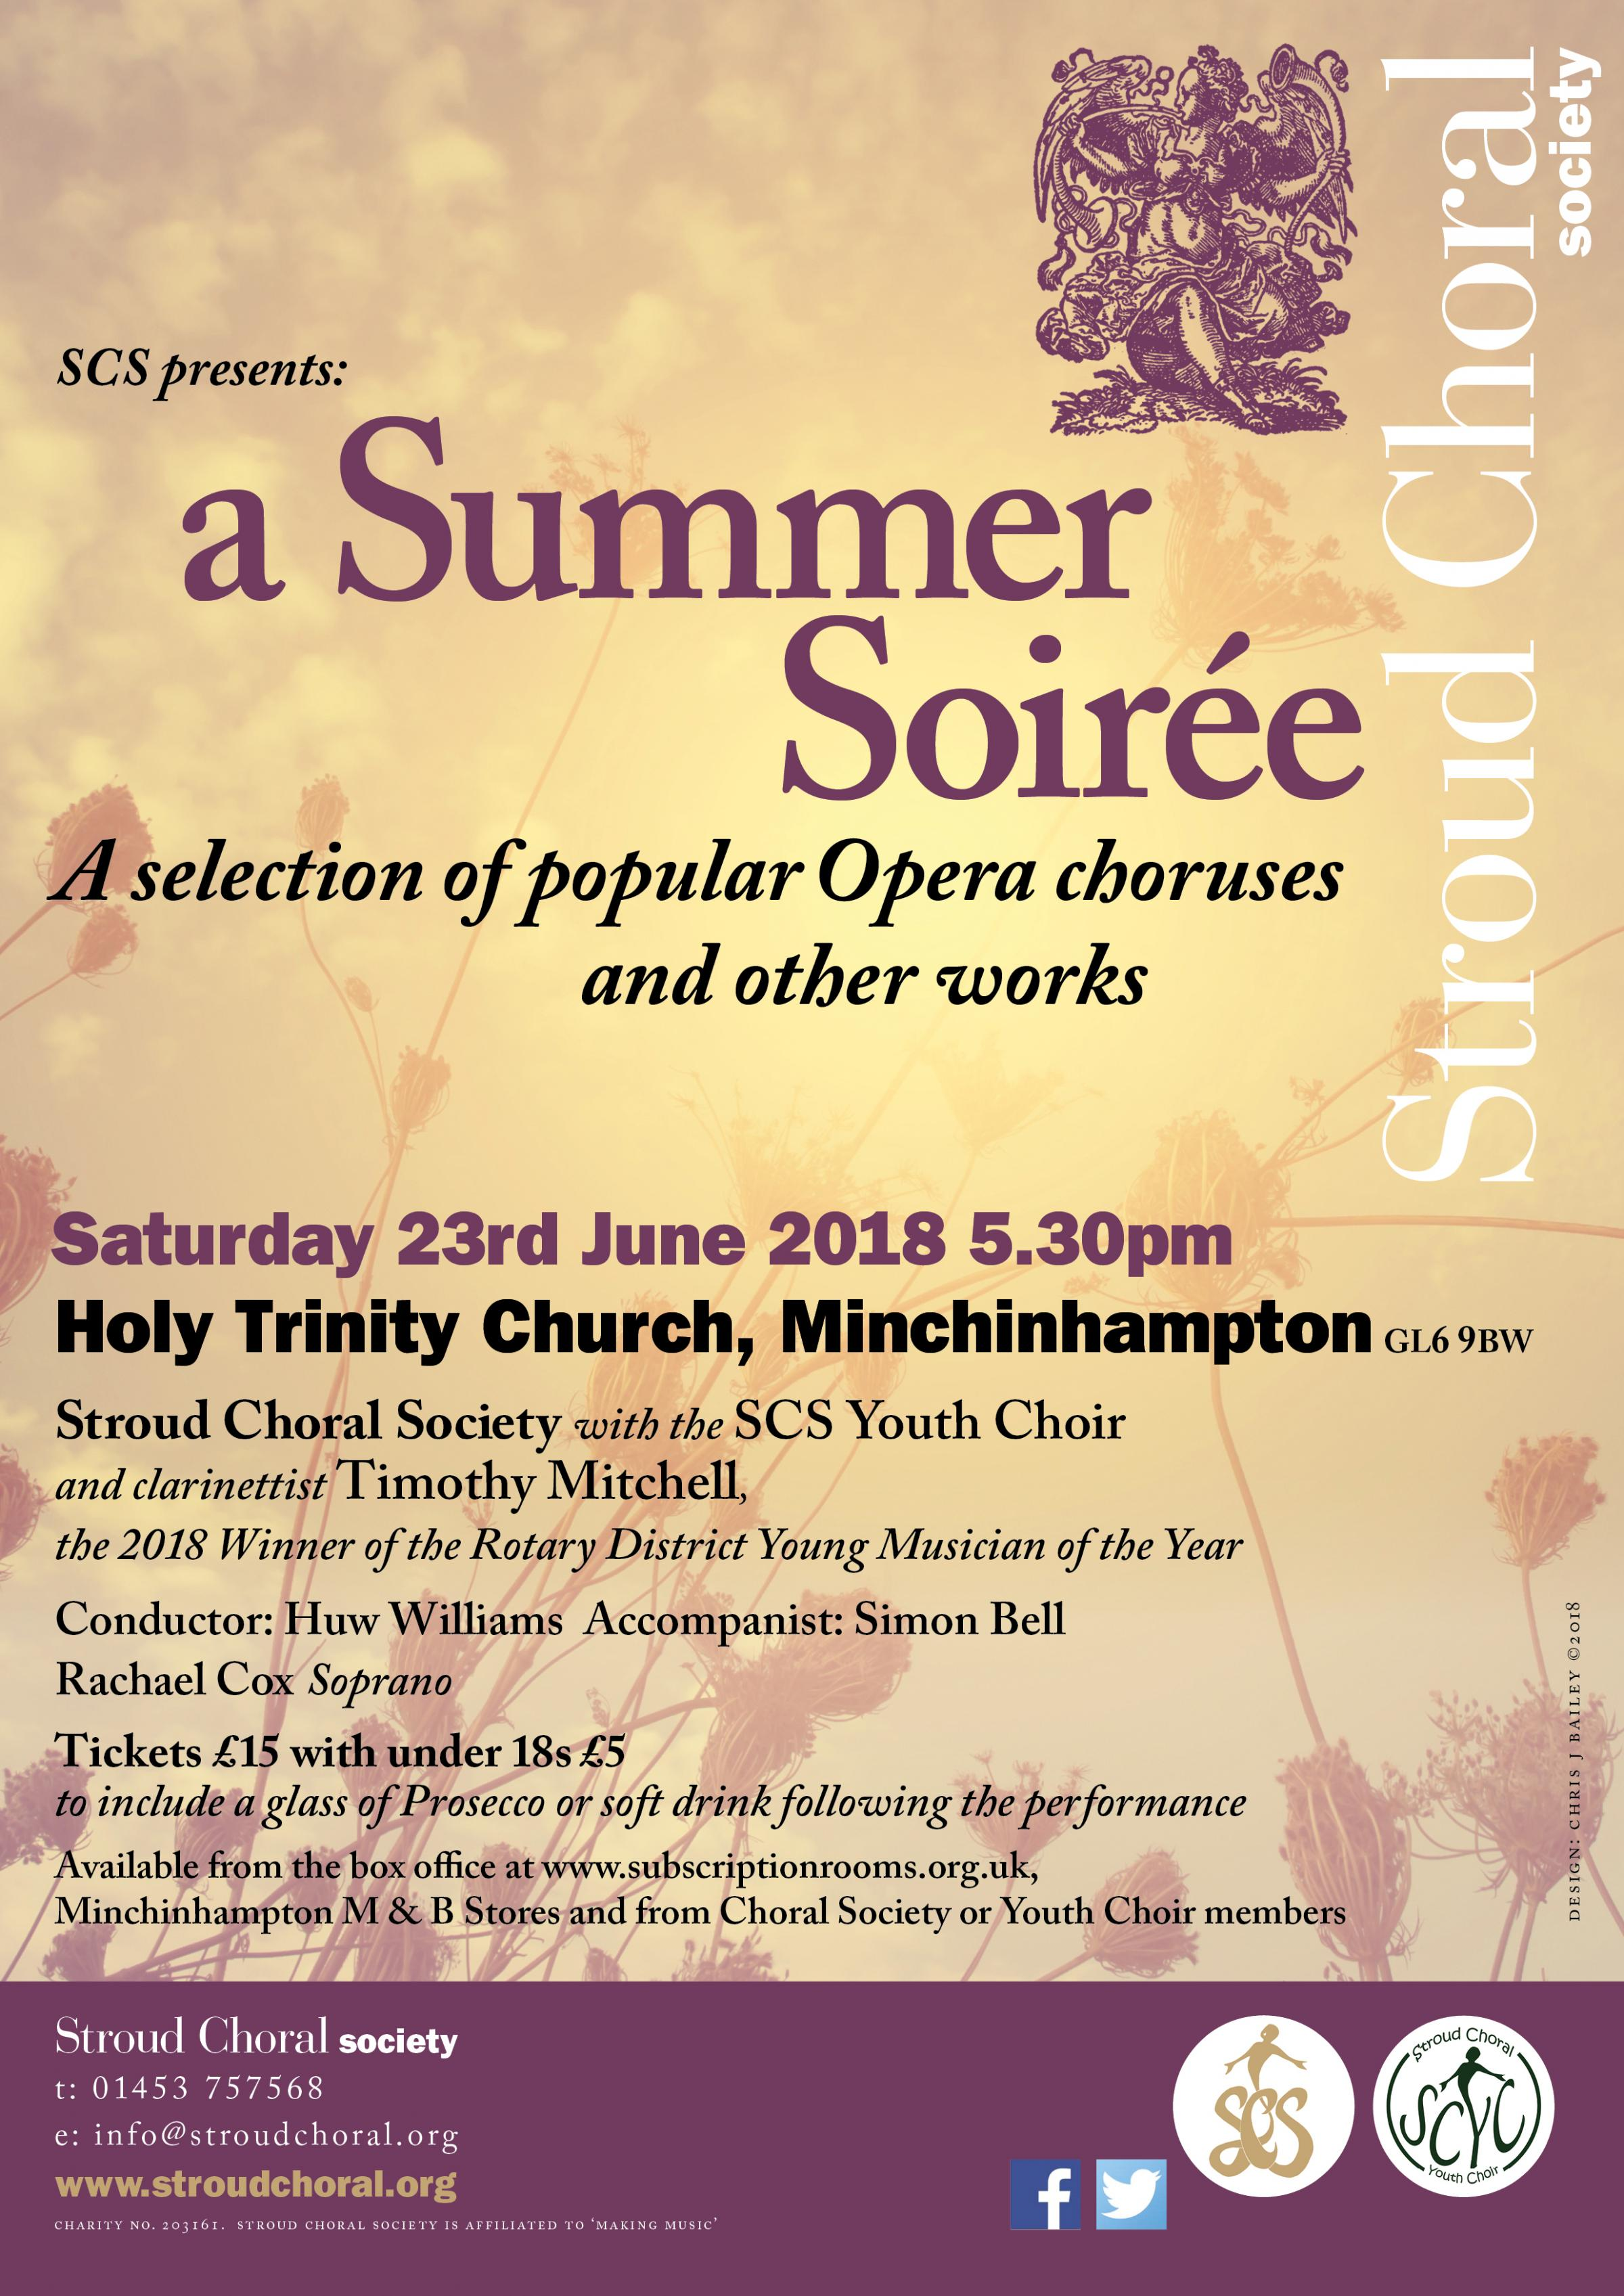 Stroud Choral Society's Summer Concert